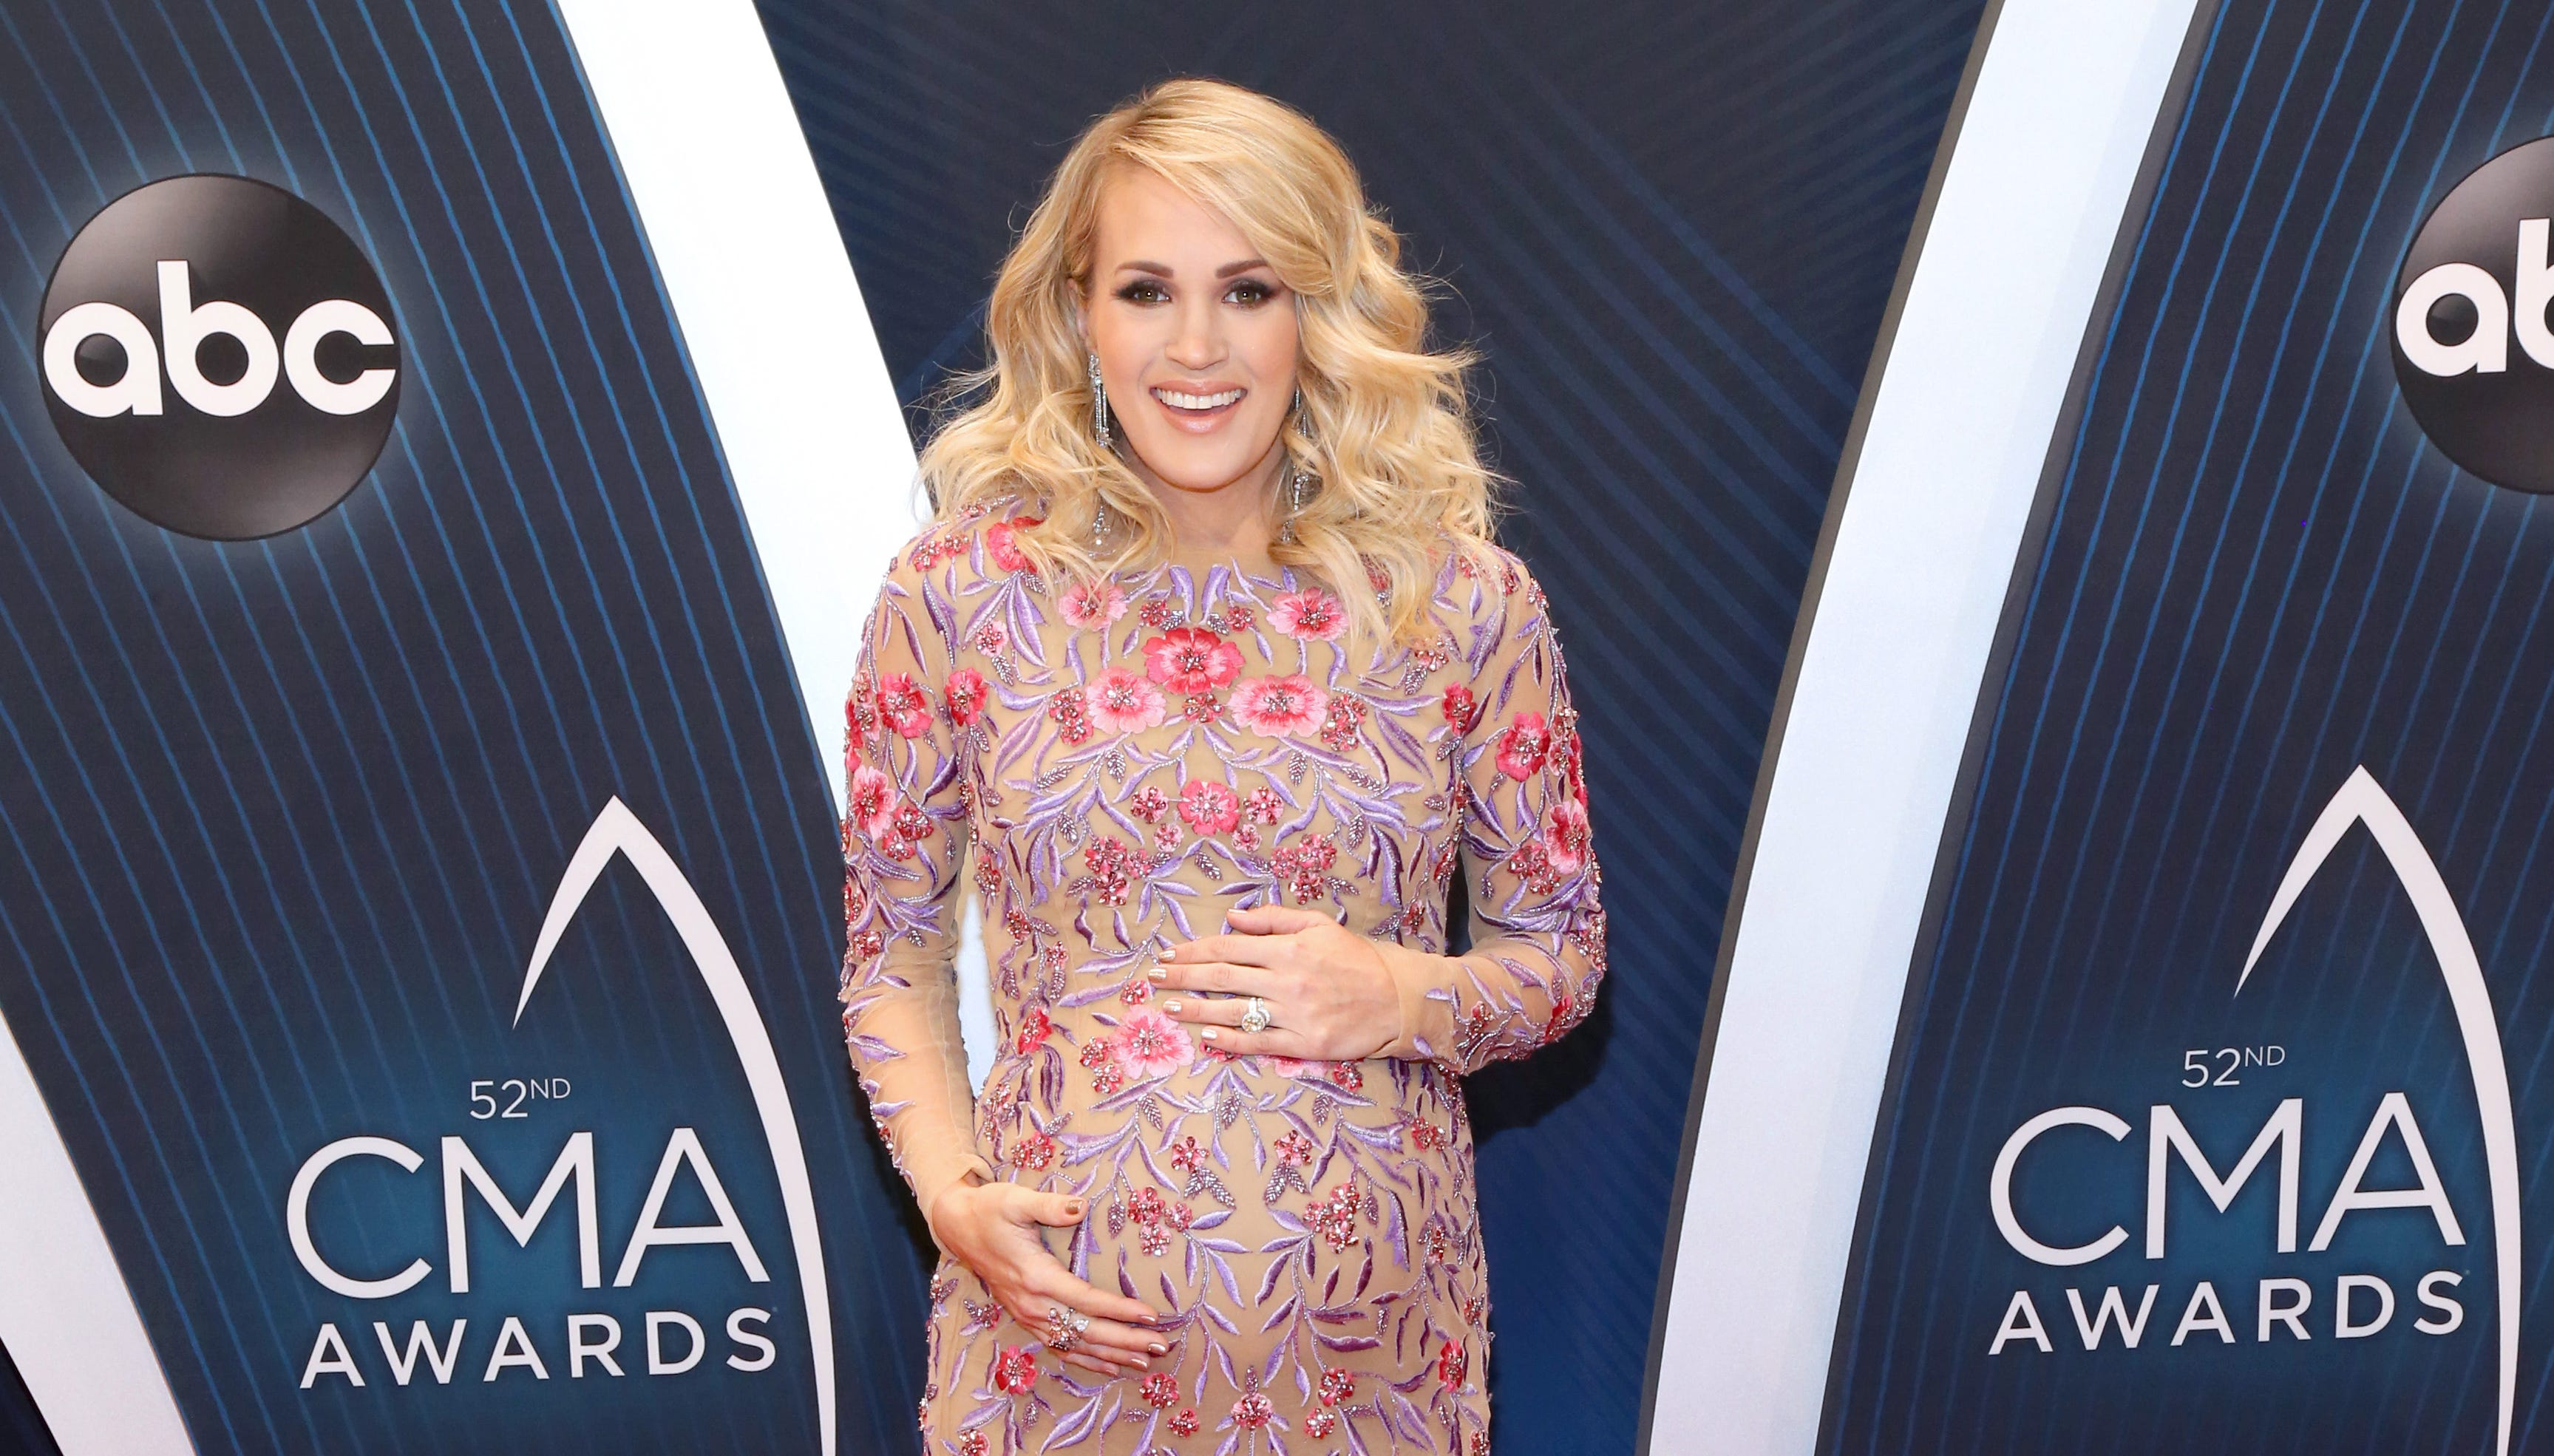 Carrie Underwood attends the 52nd annual CMA Awards at the Bridgestone Arena on November 14, 2018 in Nashville, Tennessee.